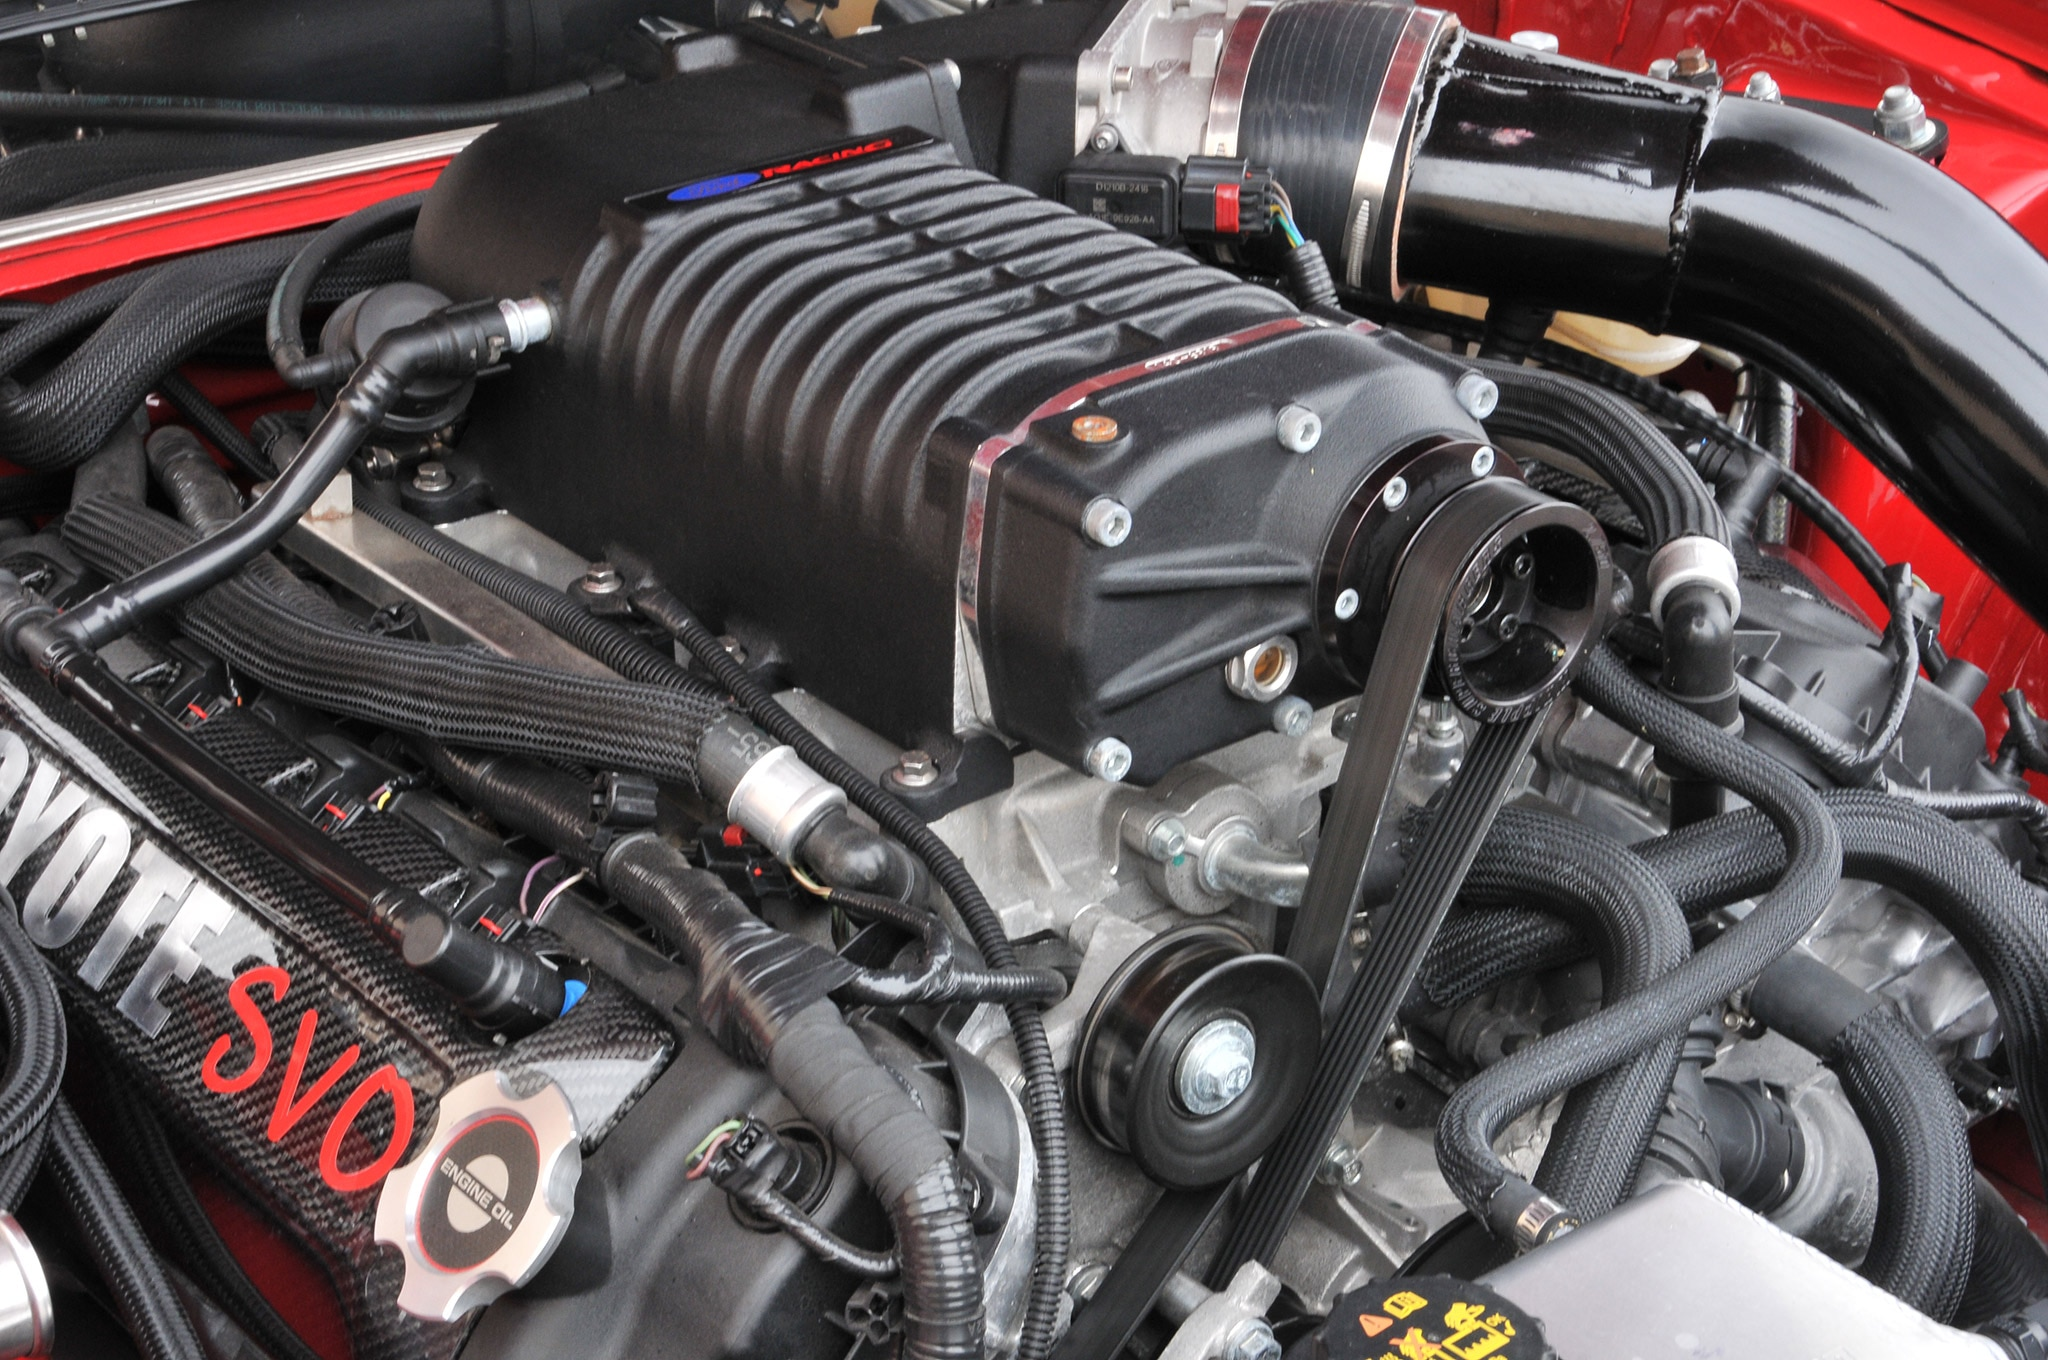 1986 Ford Mustang Svo Coyote Vermillion Red Engine Side View